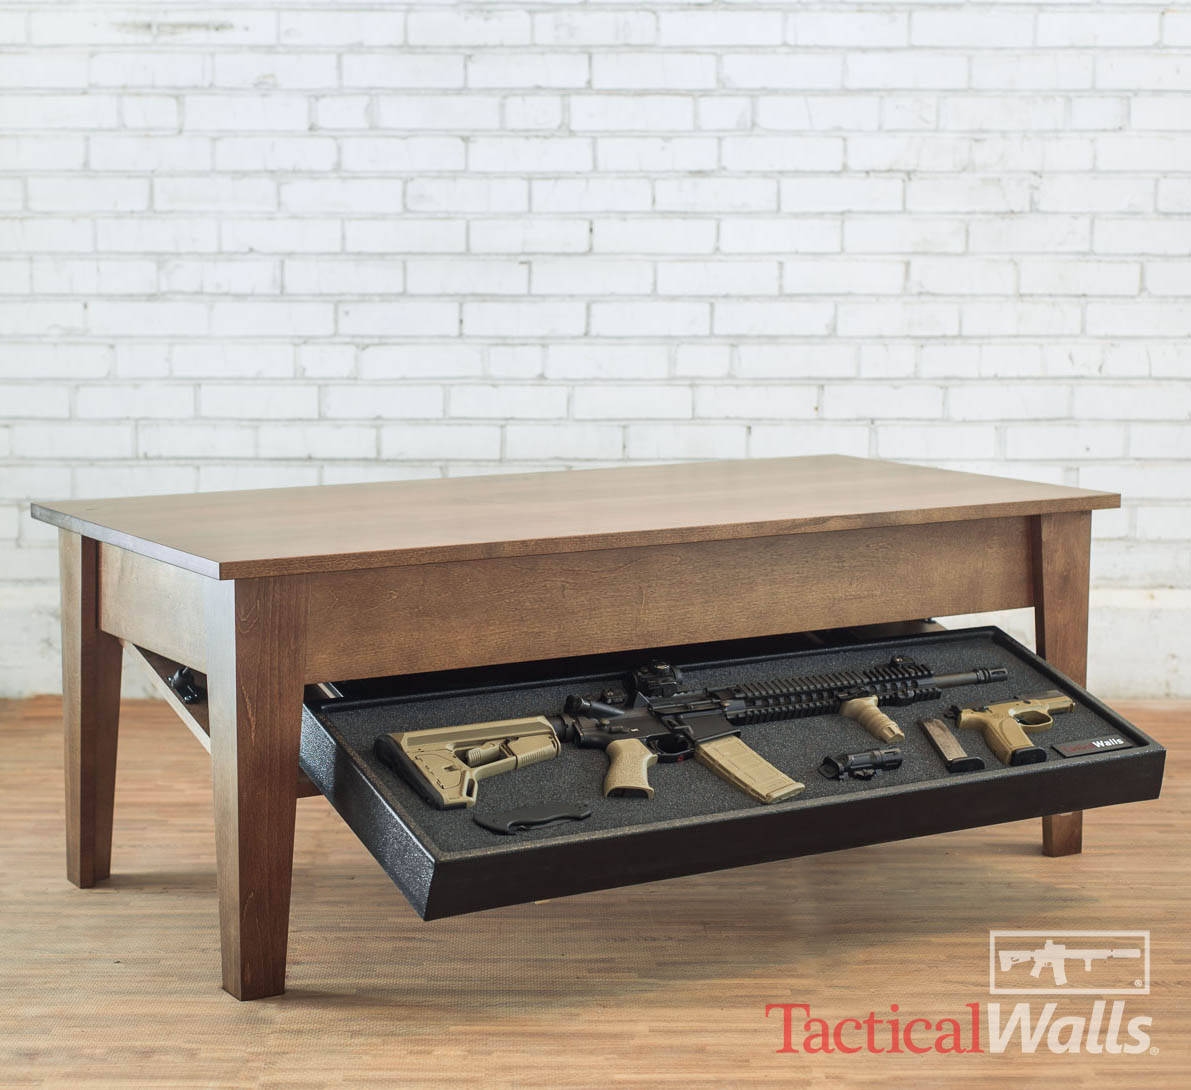 tactical walls coffee table rh gunsafes com coffee table gun safe blueprints